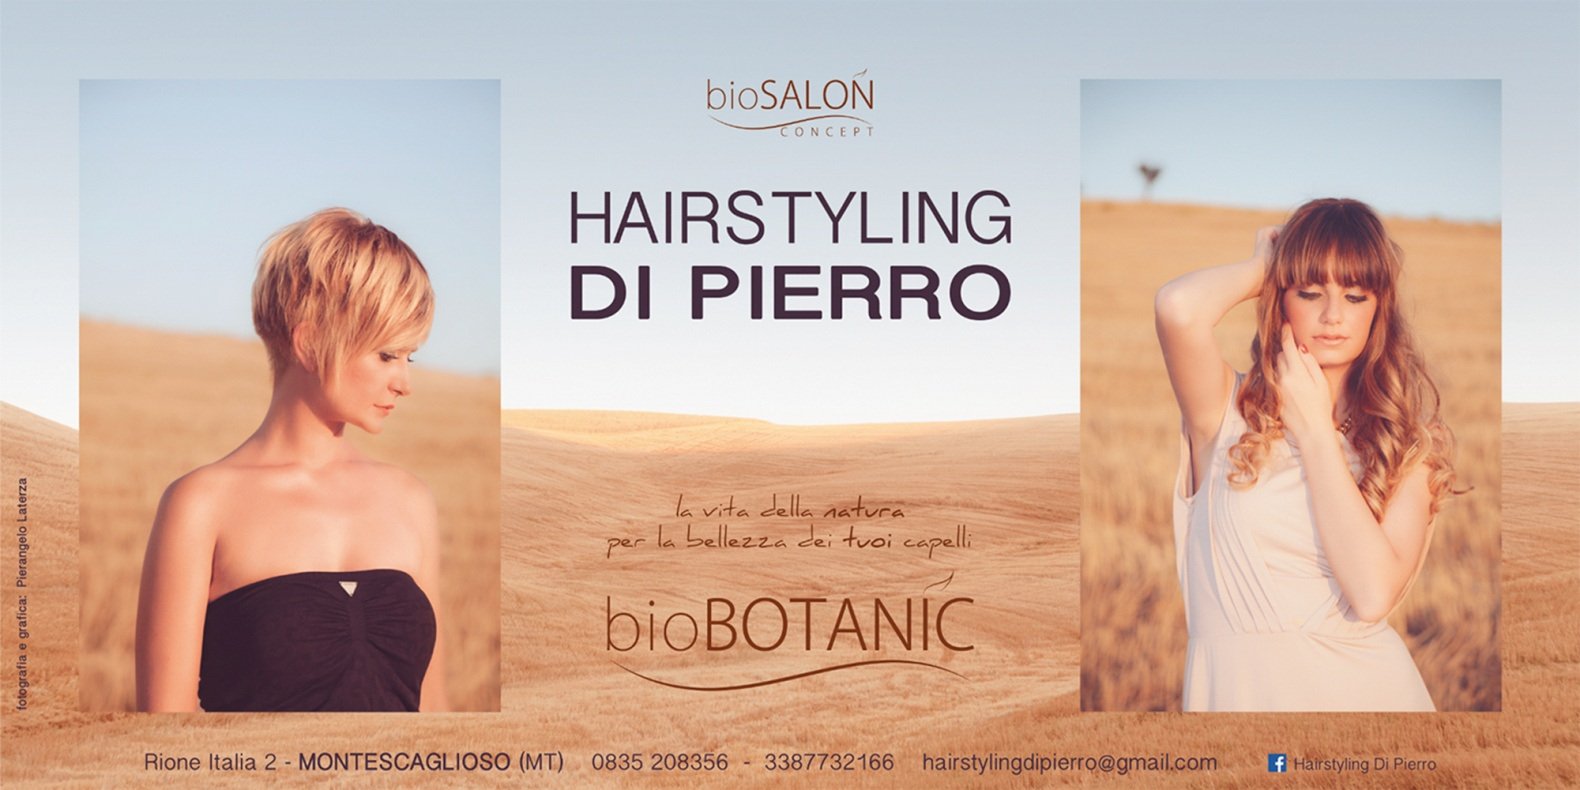 HAIRSTYLING DI PIERRO